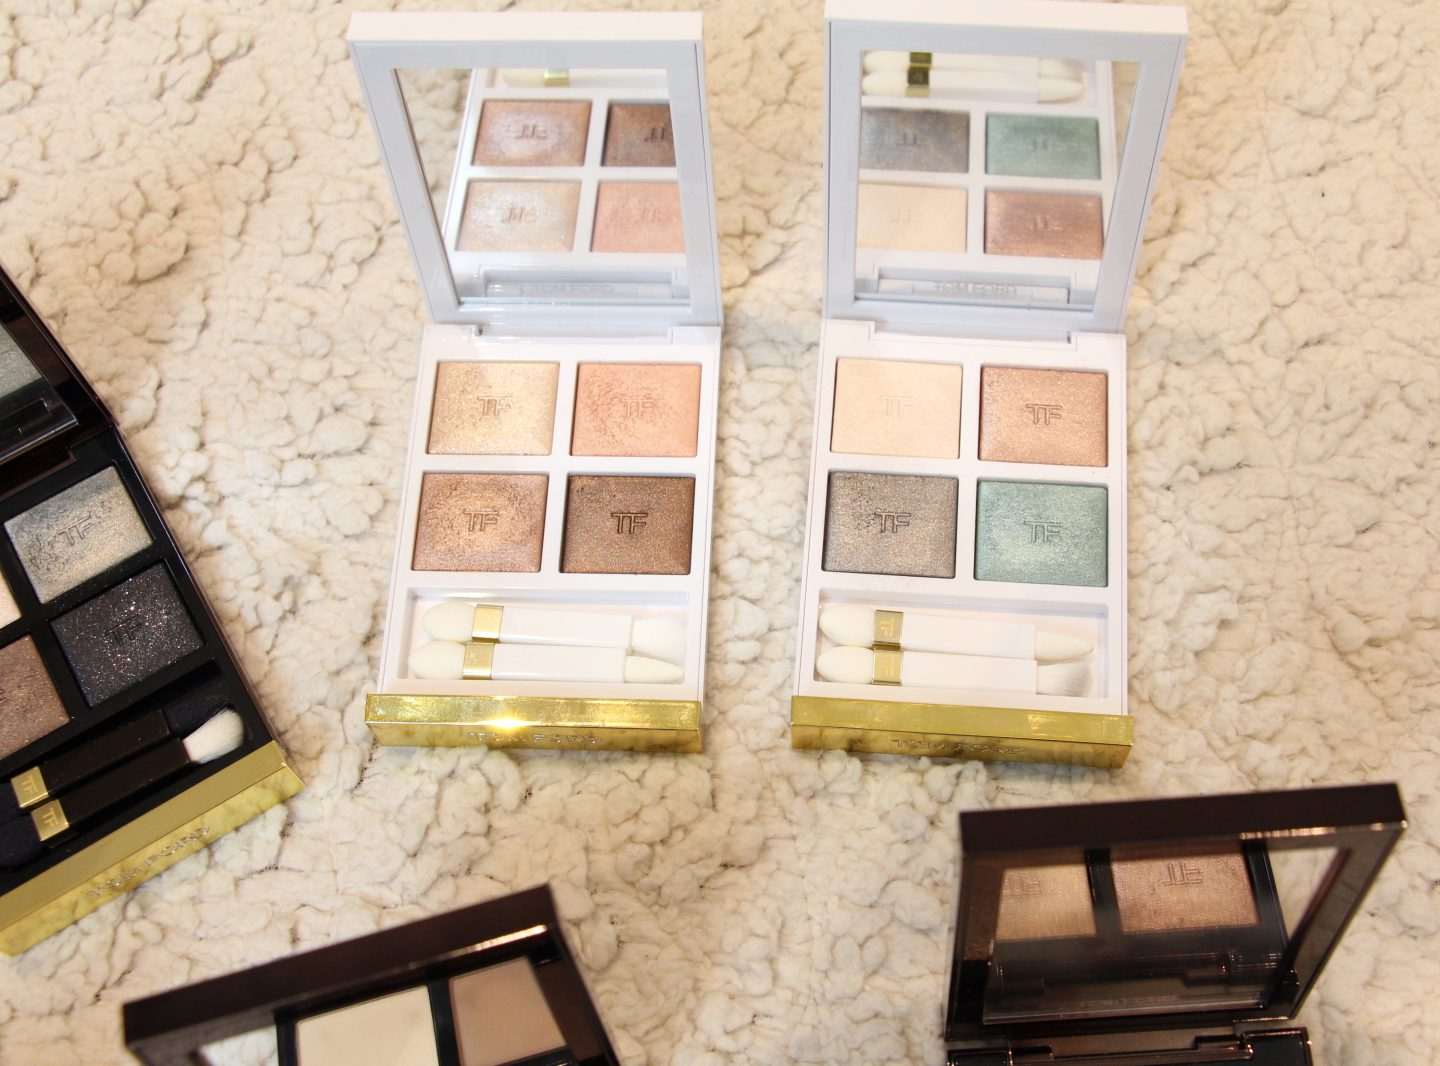 Tom Ford Soleil Neige Eye Quads Soleil D'Hiver and Soleil et Lune